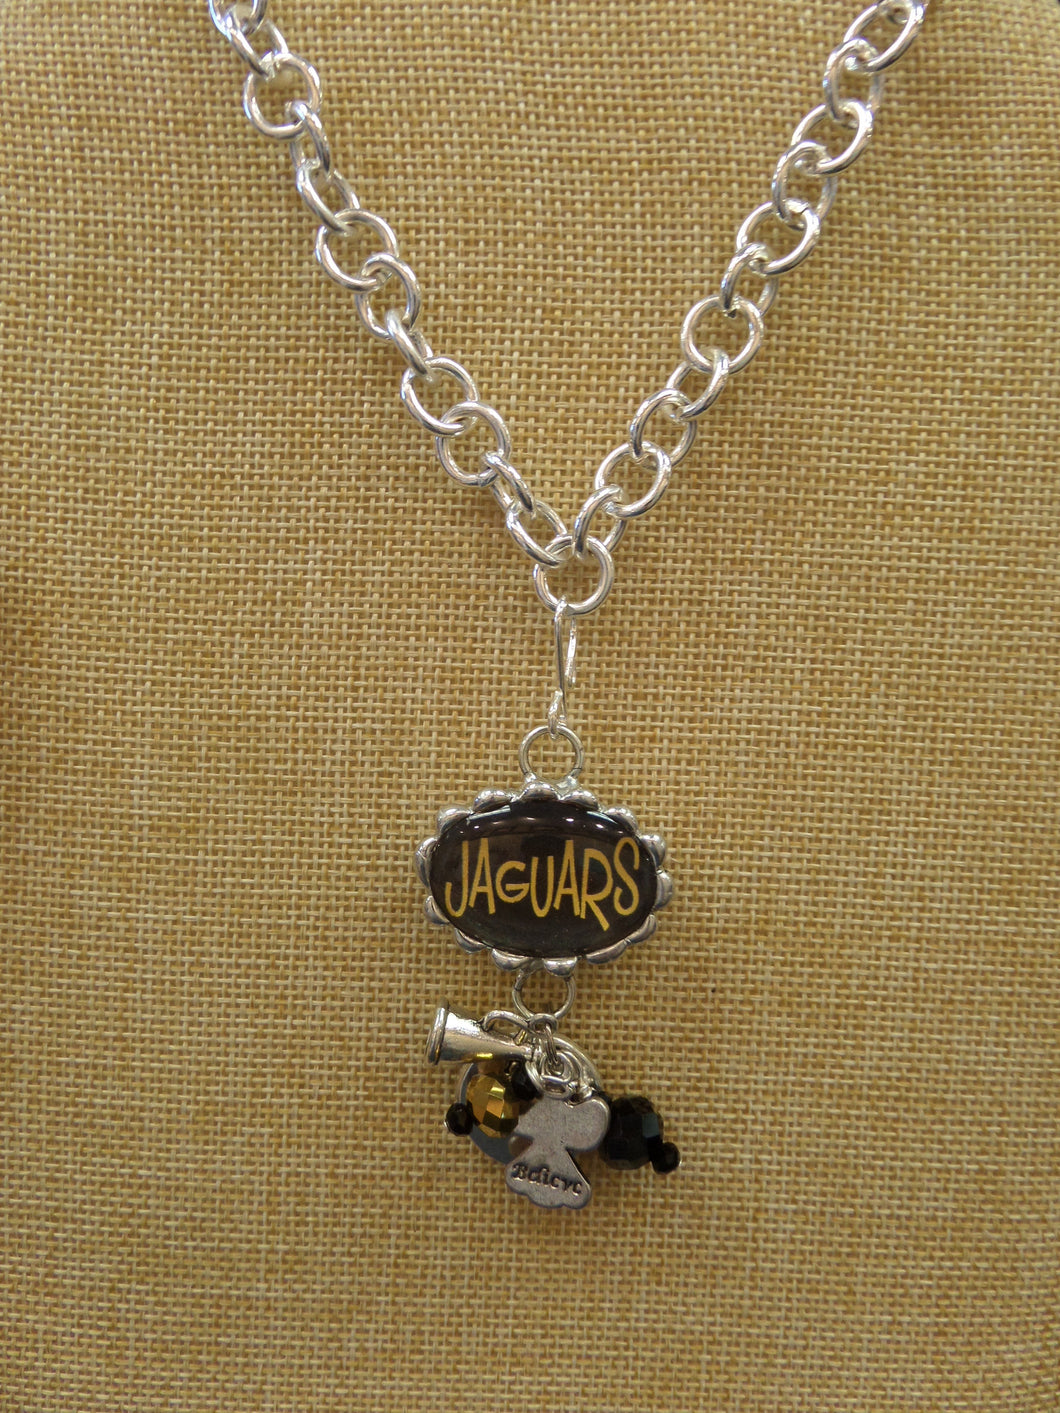 ADO | Hometown Pride Jaguars Charm Necklace - All Decd Out